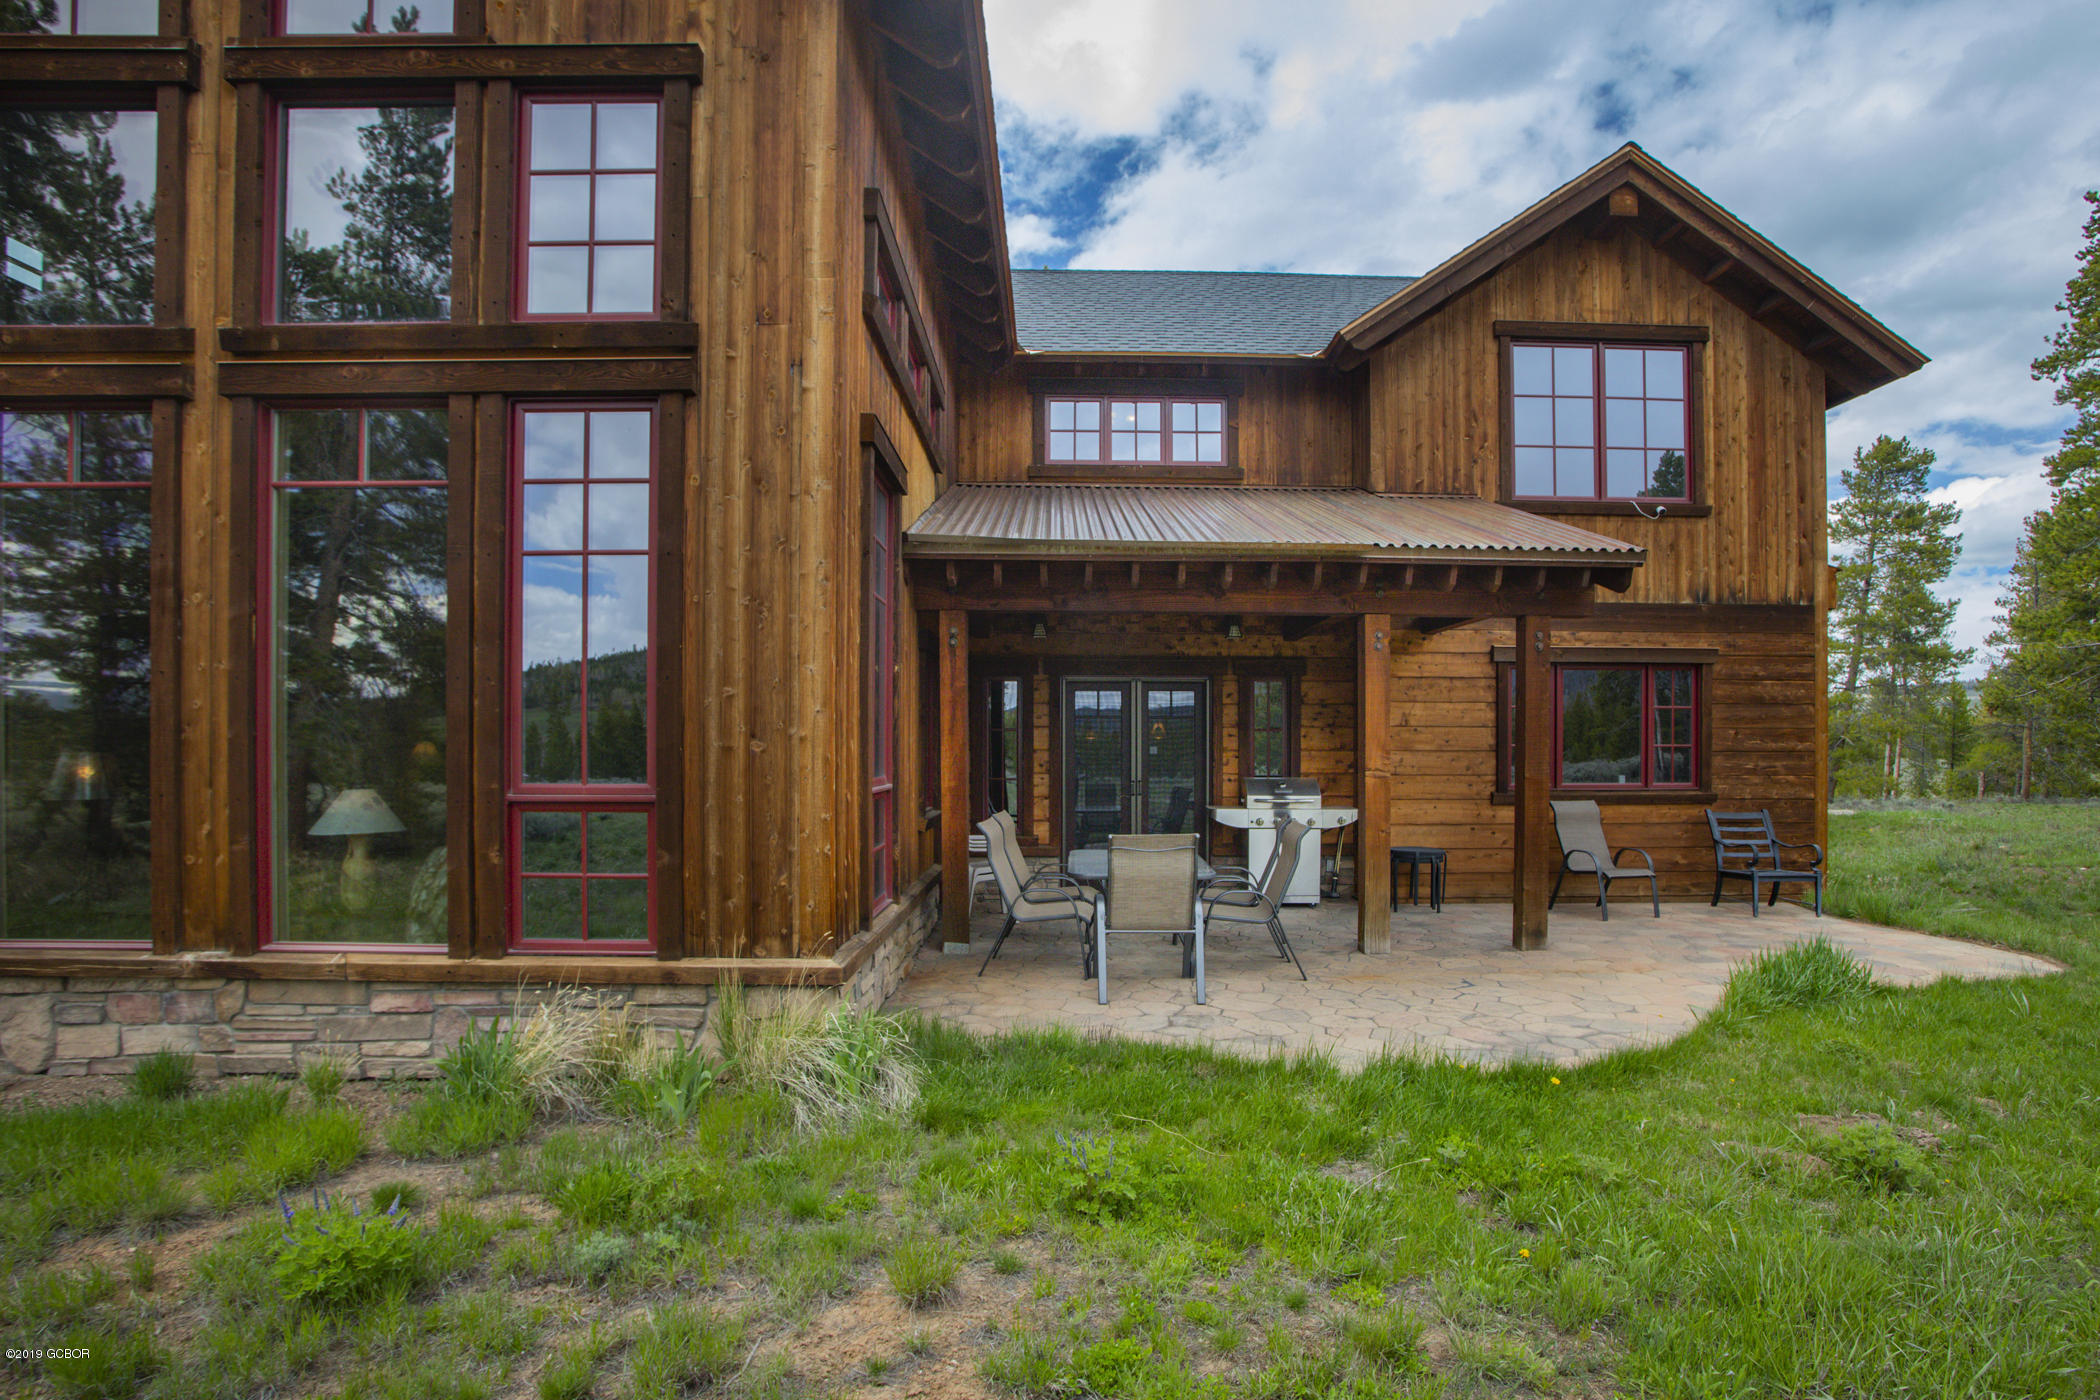 MLS# 19-704 - 62 - 612 County Rd 6237  #, Granby, CO 80446